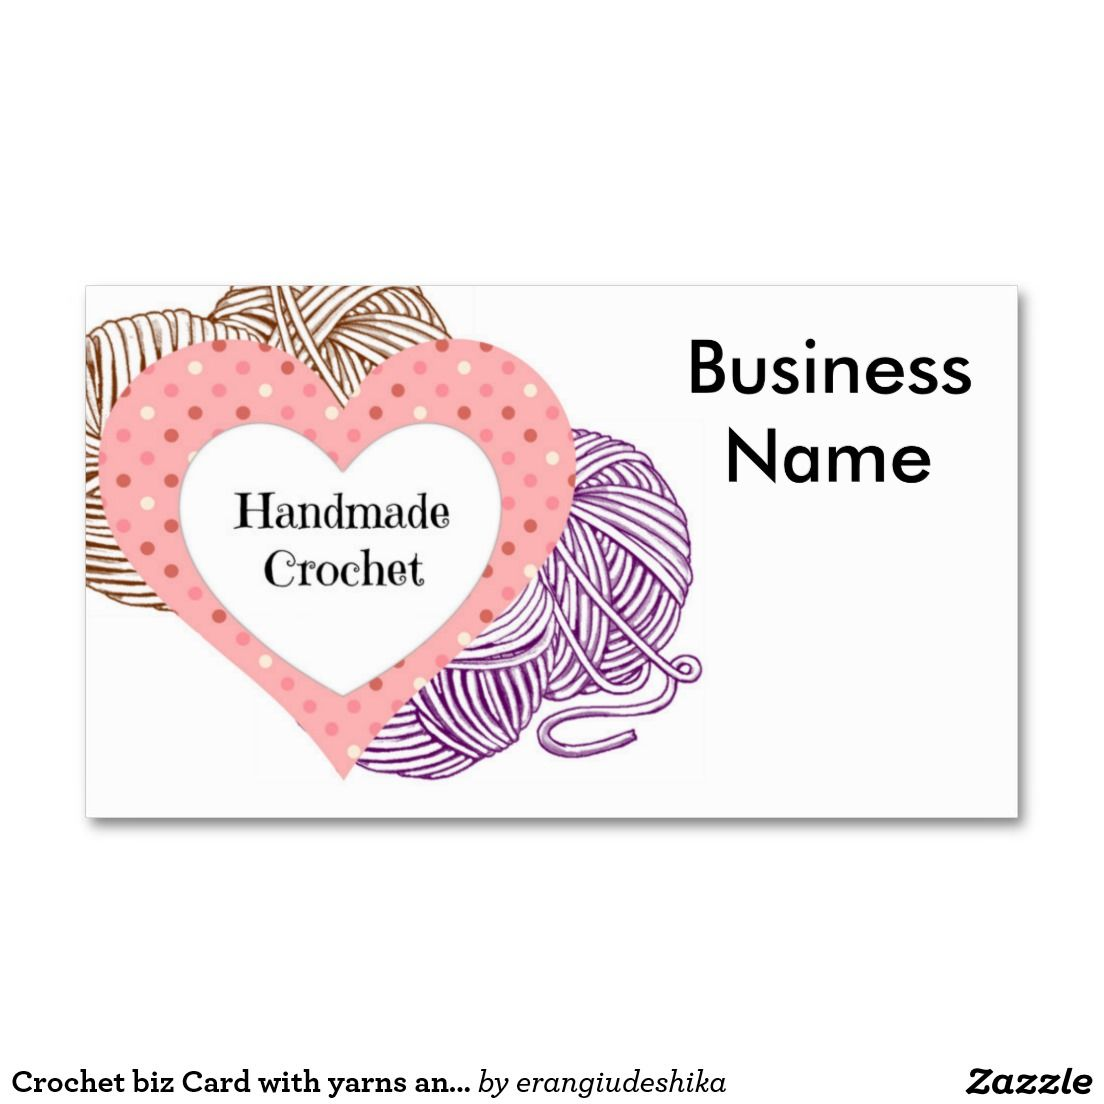 Crochet biz Card with yarns and Heart Shaped logo | Heart shapes ...